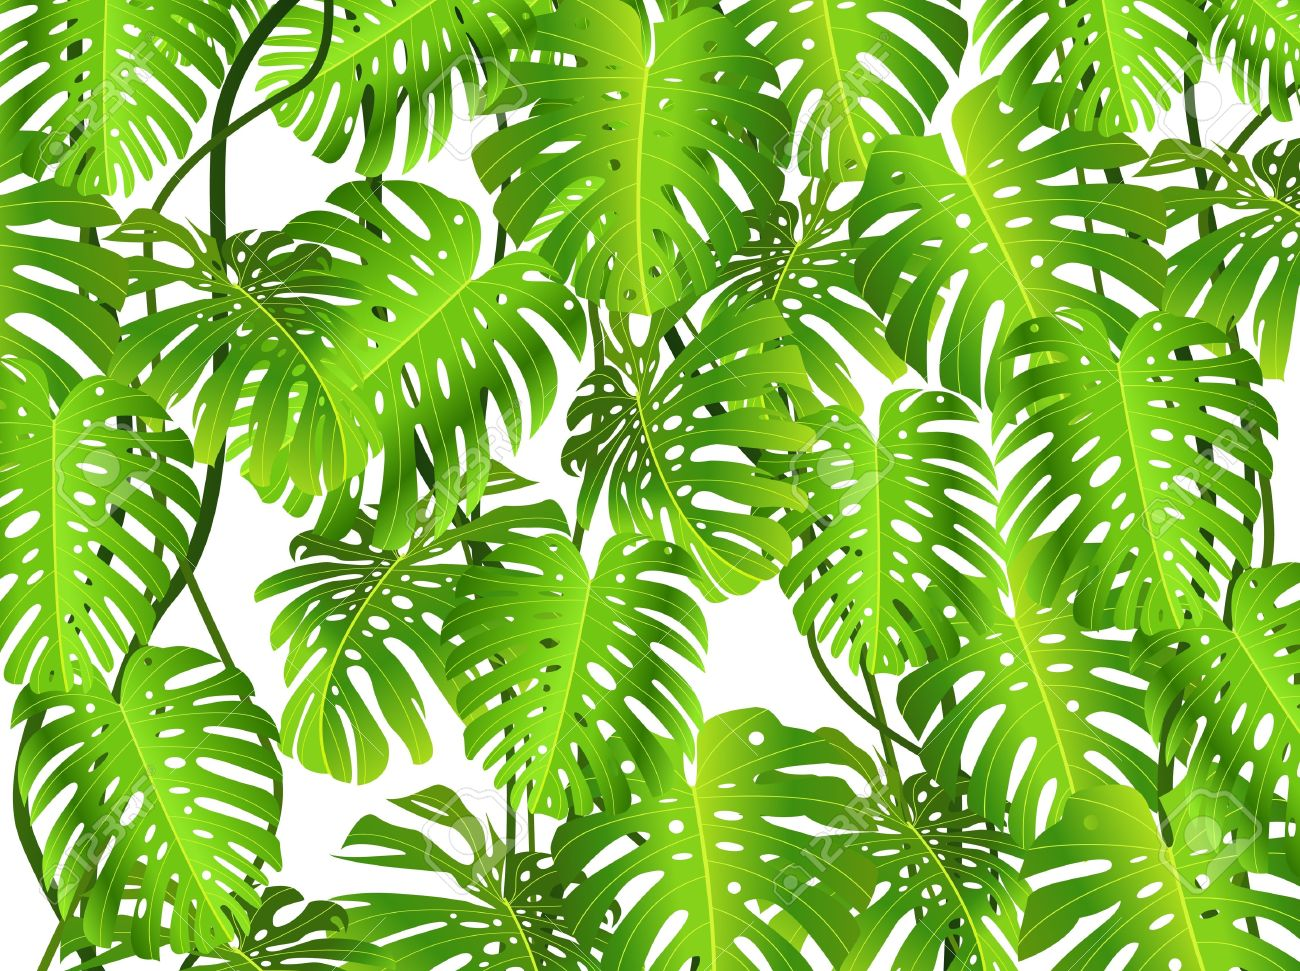 Jungle foliage clipart.